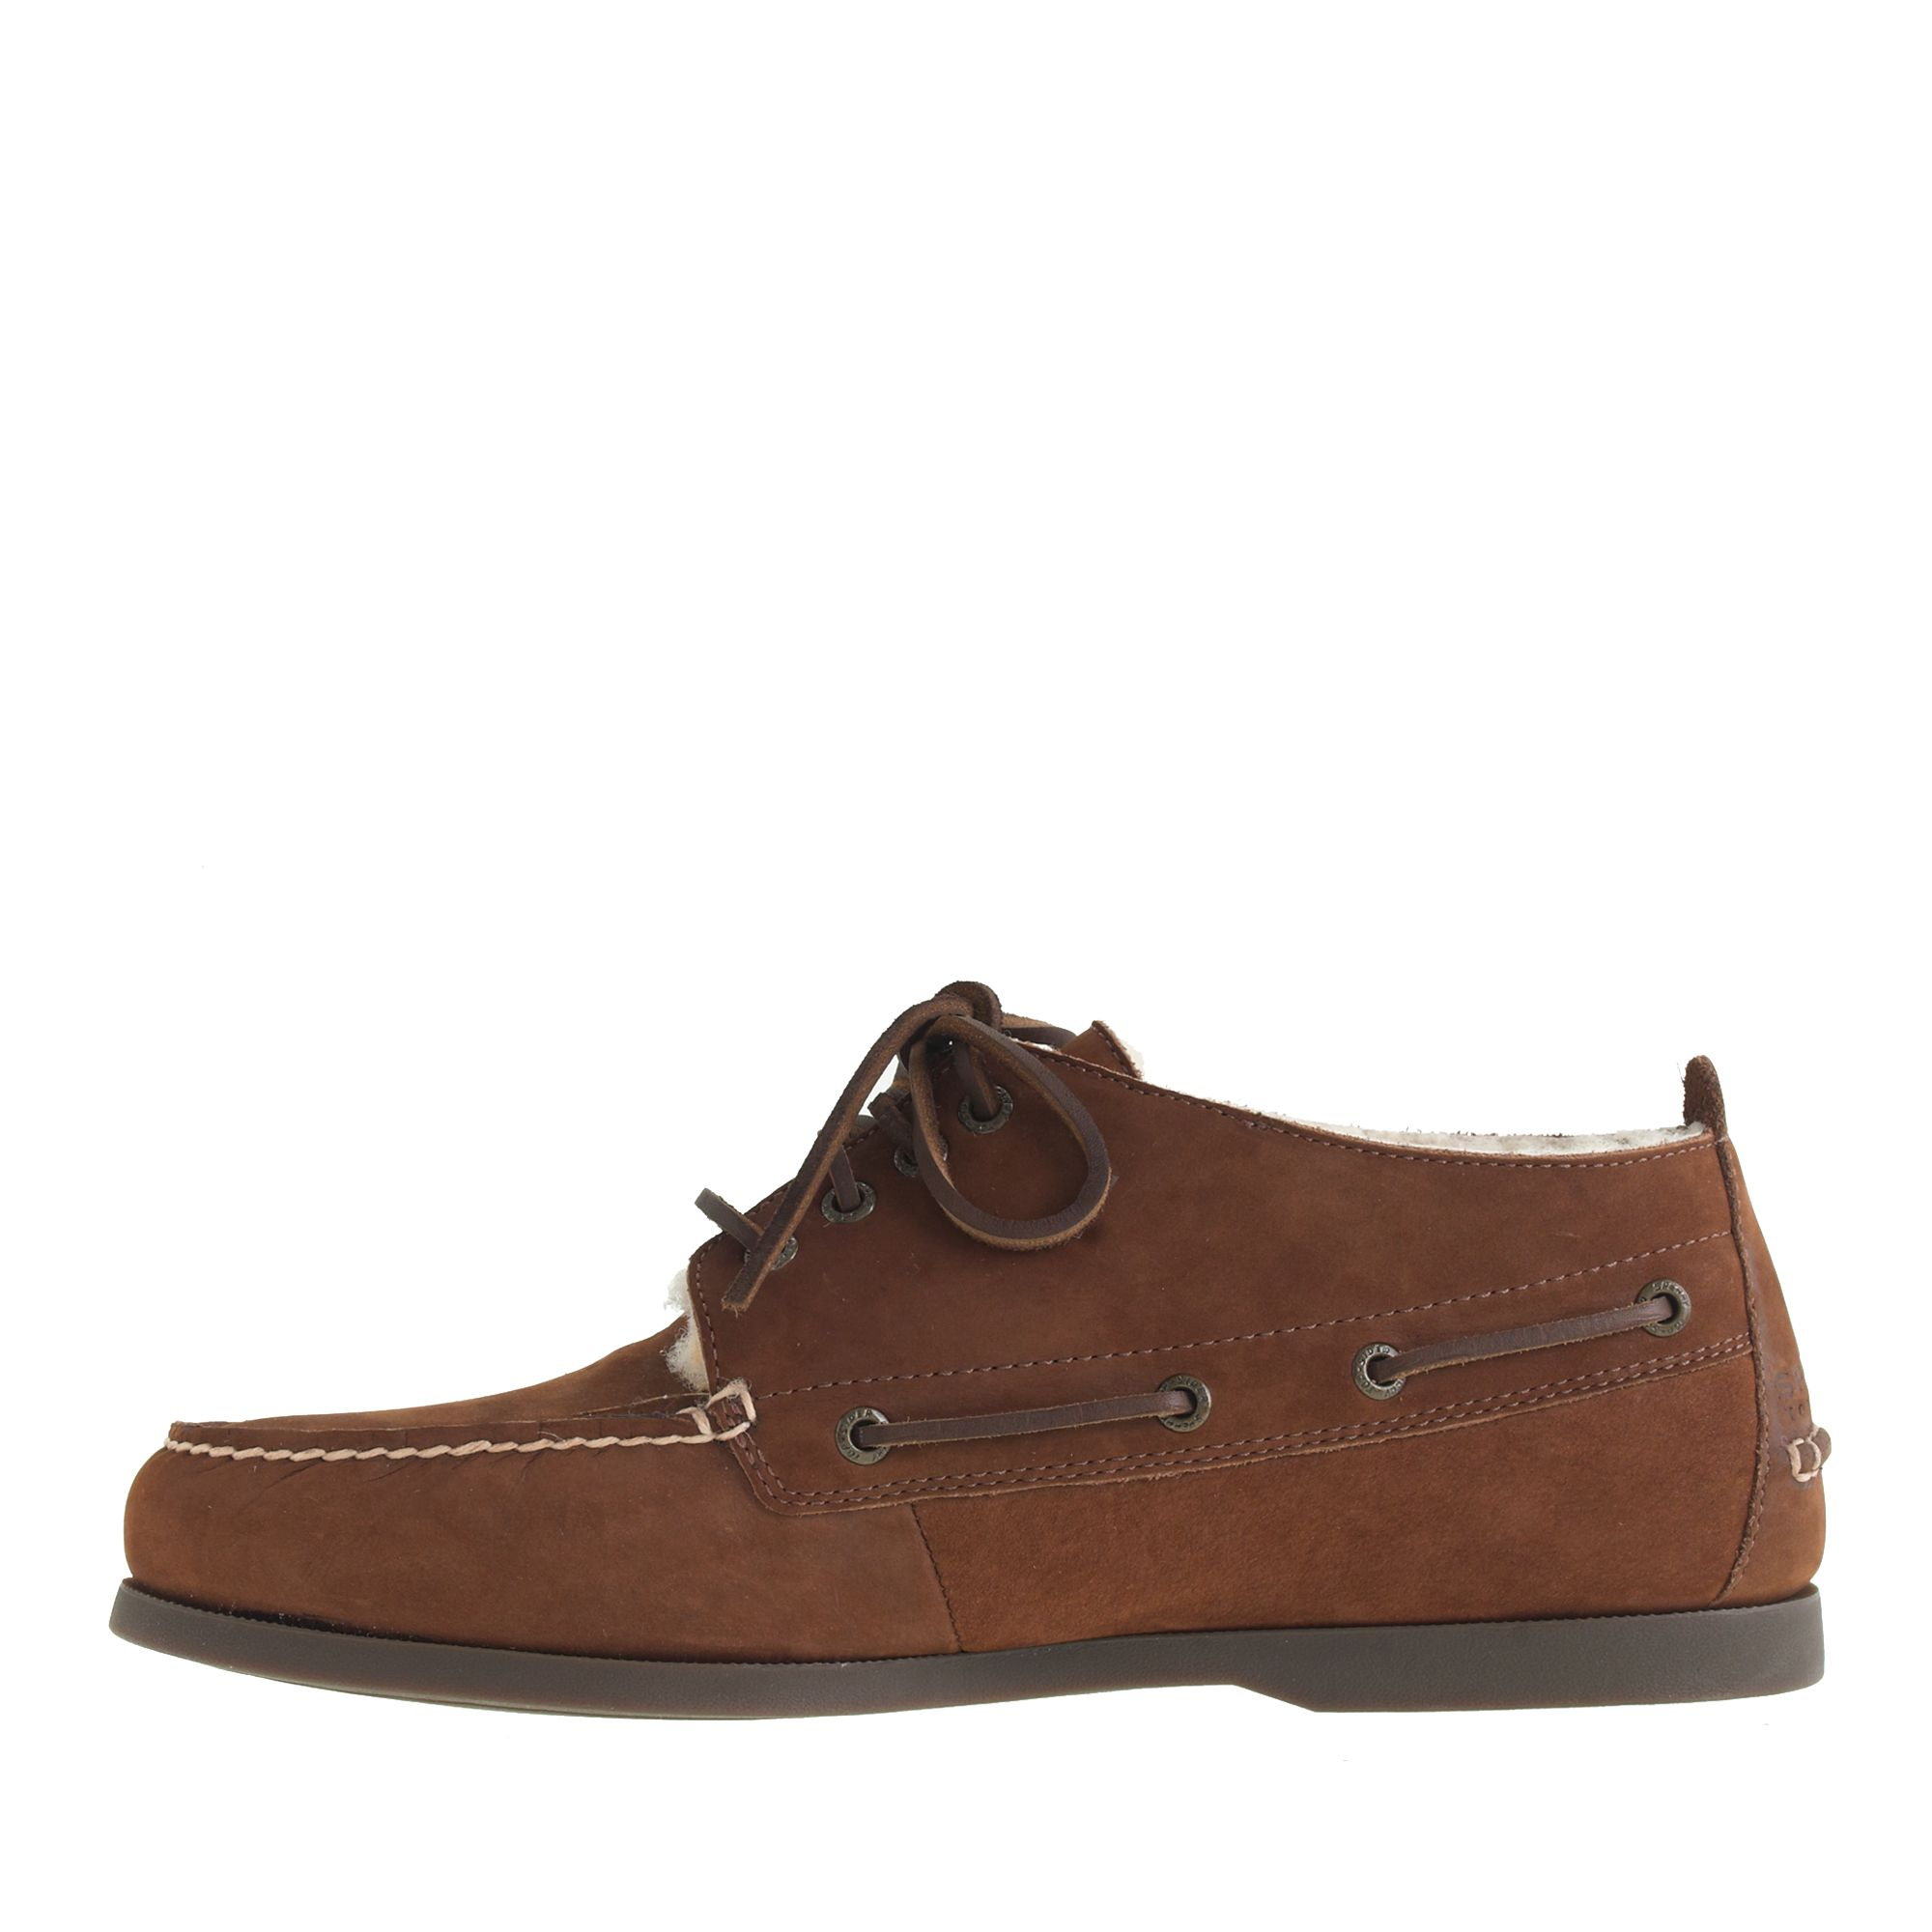 J.crew Chukka Boots in Brown for Men